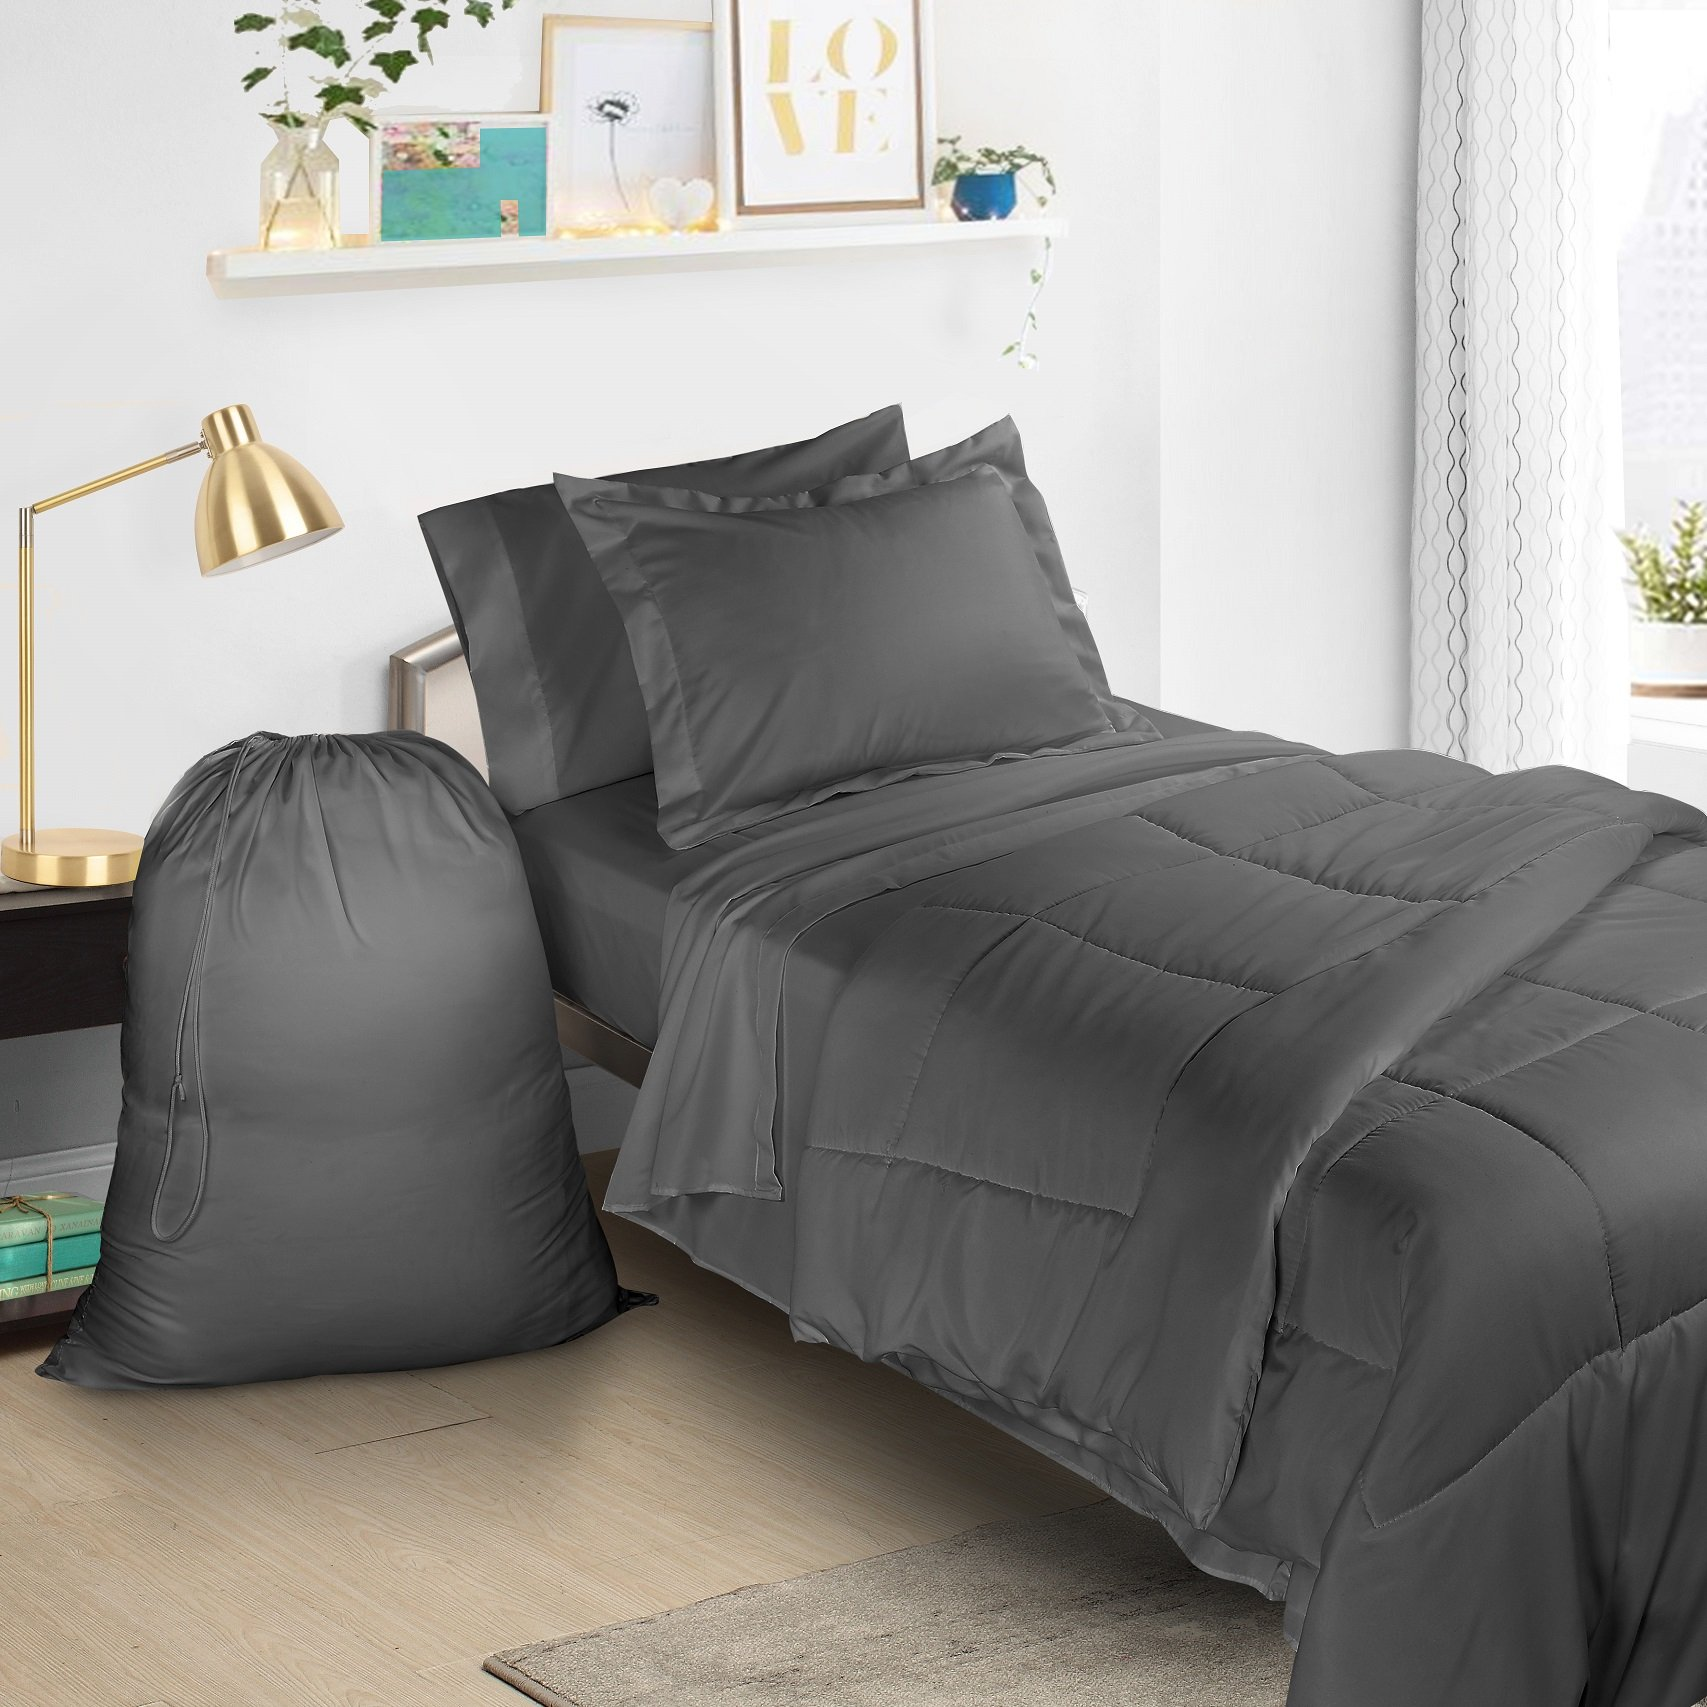 Clara Clark 6 Piece Bed In A Bag Bedding Comforter Set, Twin/X-Large, Charcoal Gray